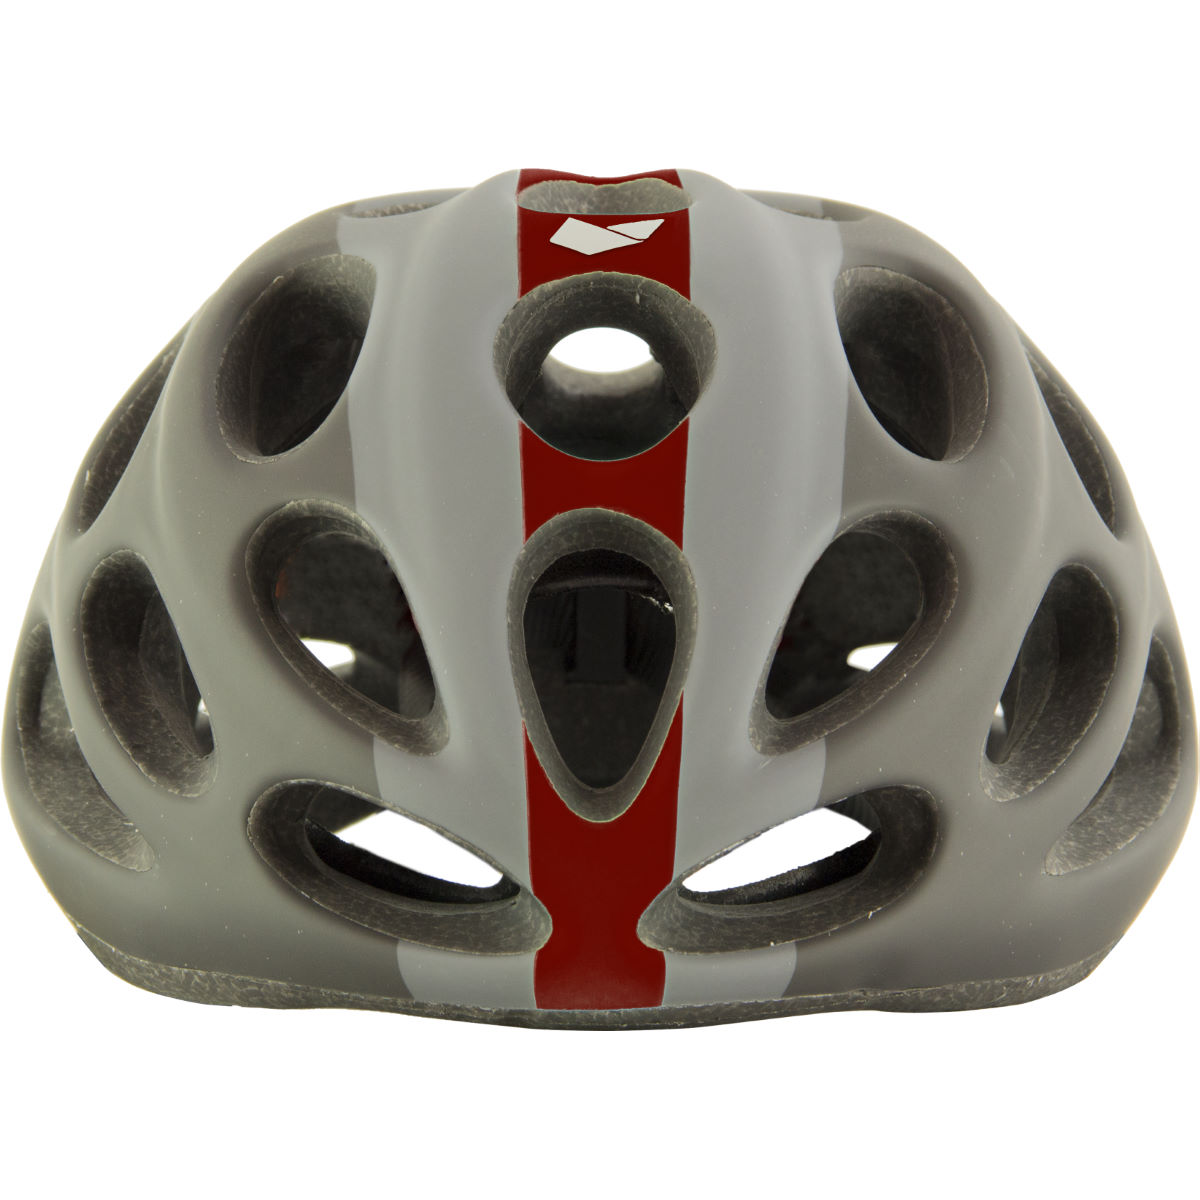 Image of Casque Catlike Chupito - L Black/Grey/Red   Casques